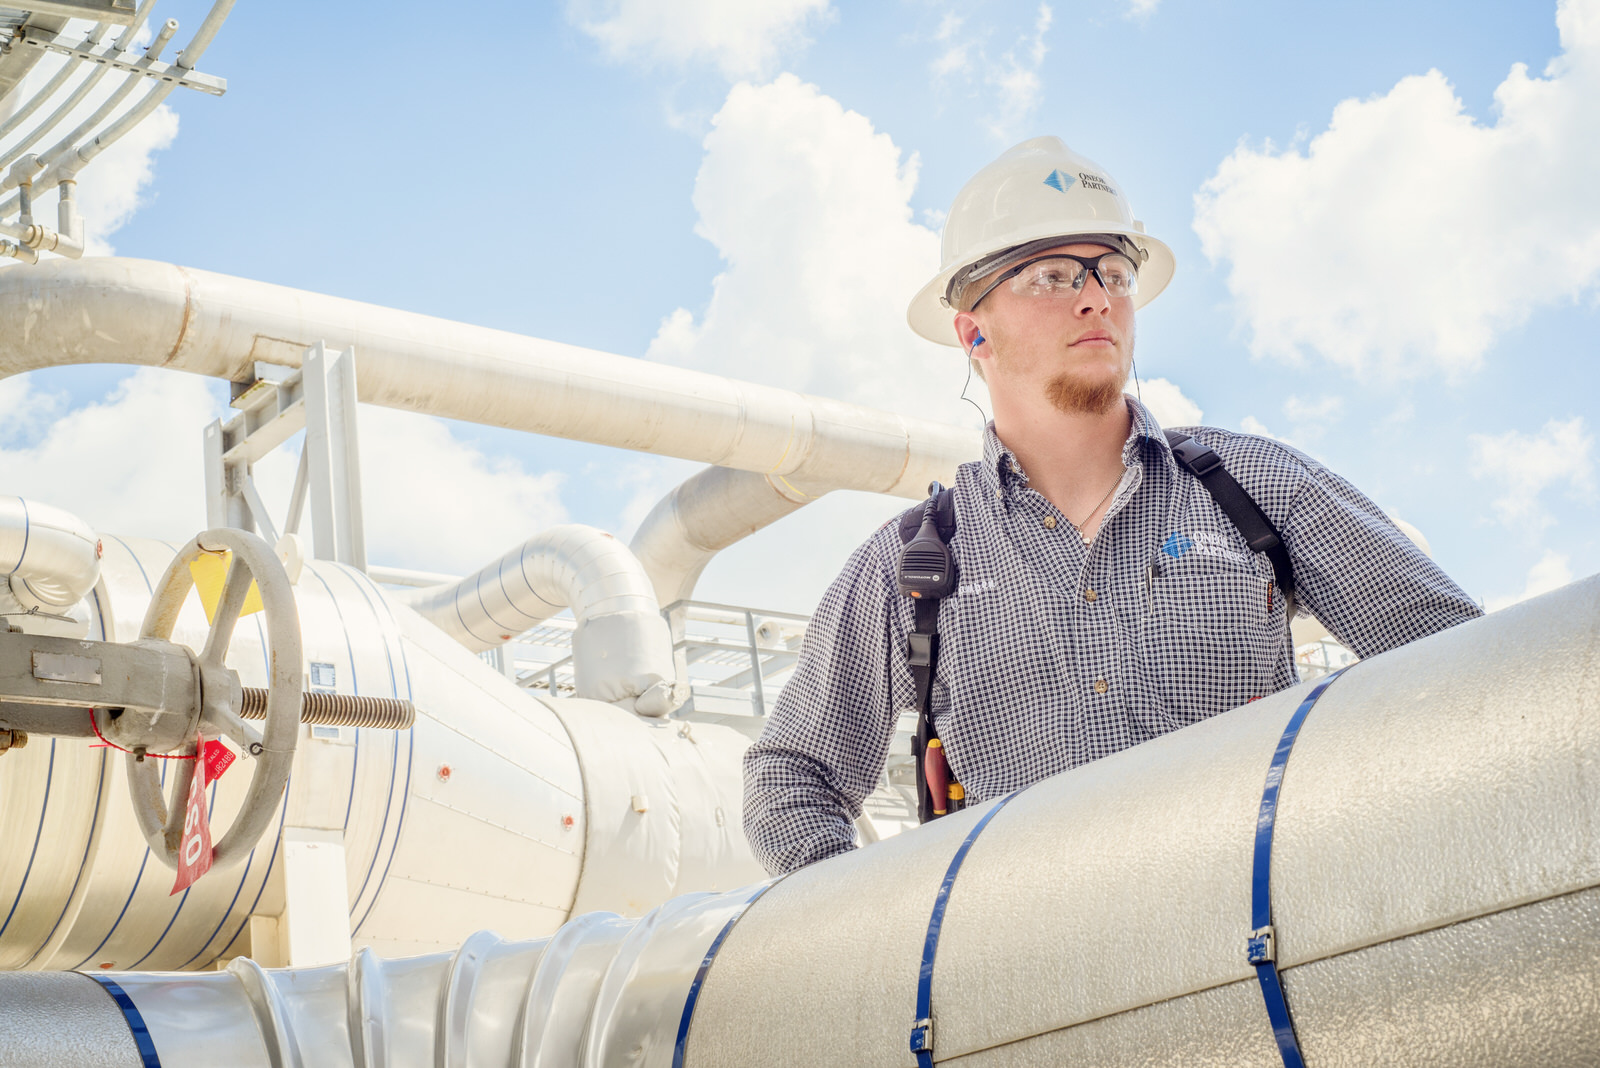 Advertising photography for an oil company in North Dakota